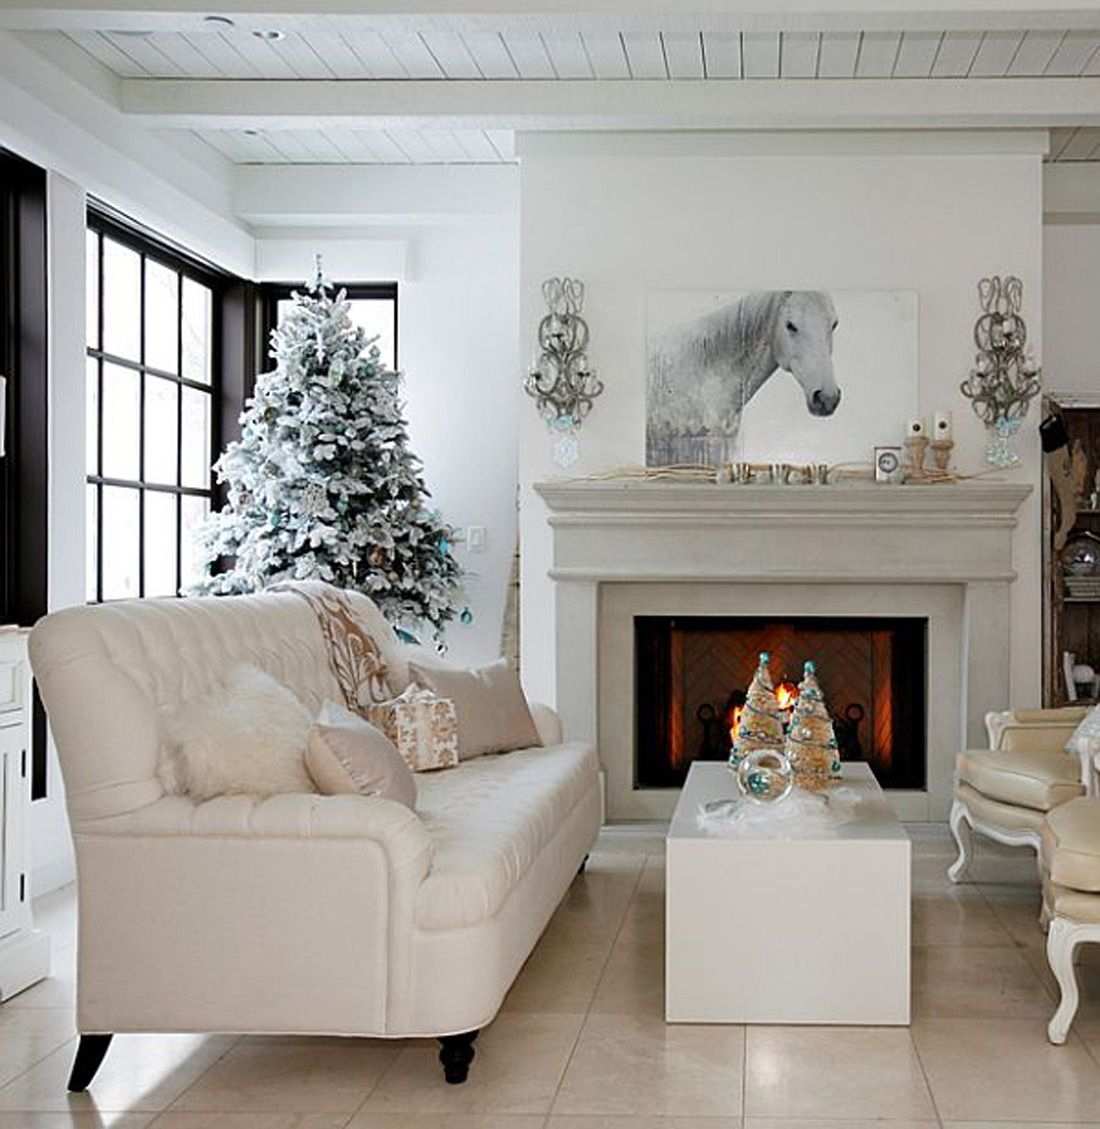 find this pin and more on christmas by wilma9779 decoration luxury living room christmas decorating